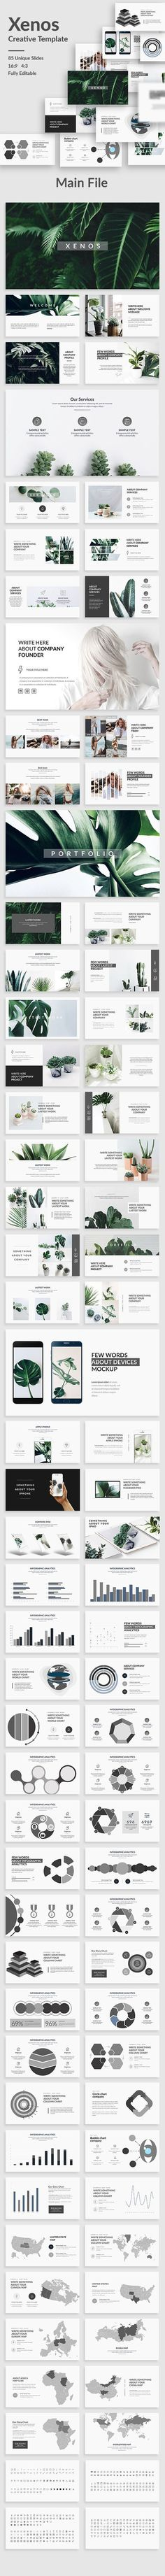 Xenos Creative Powerpoint Template - 85 unique slides - Devices mockup with drag and drop screen placeholder...